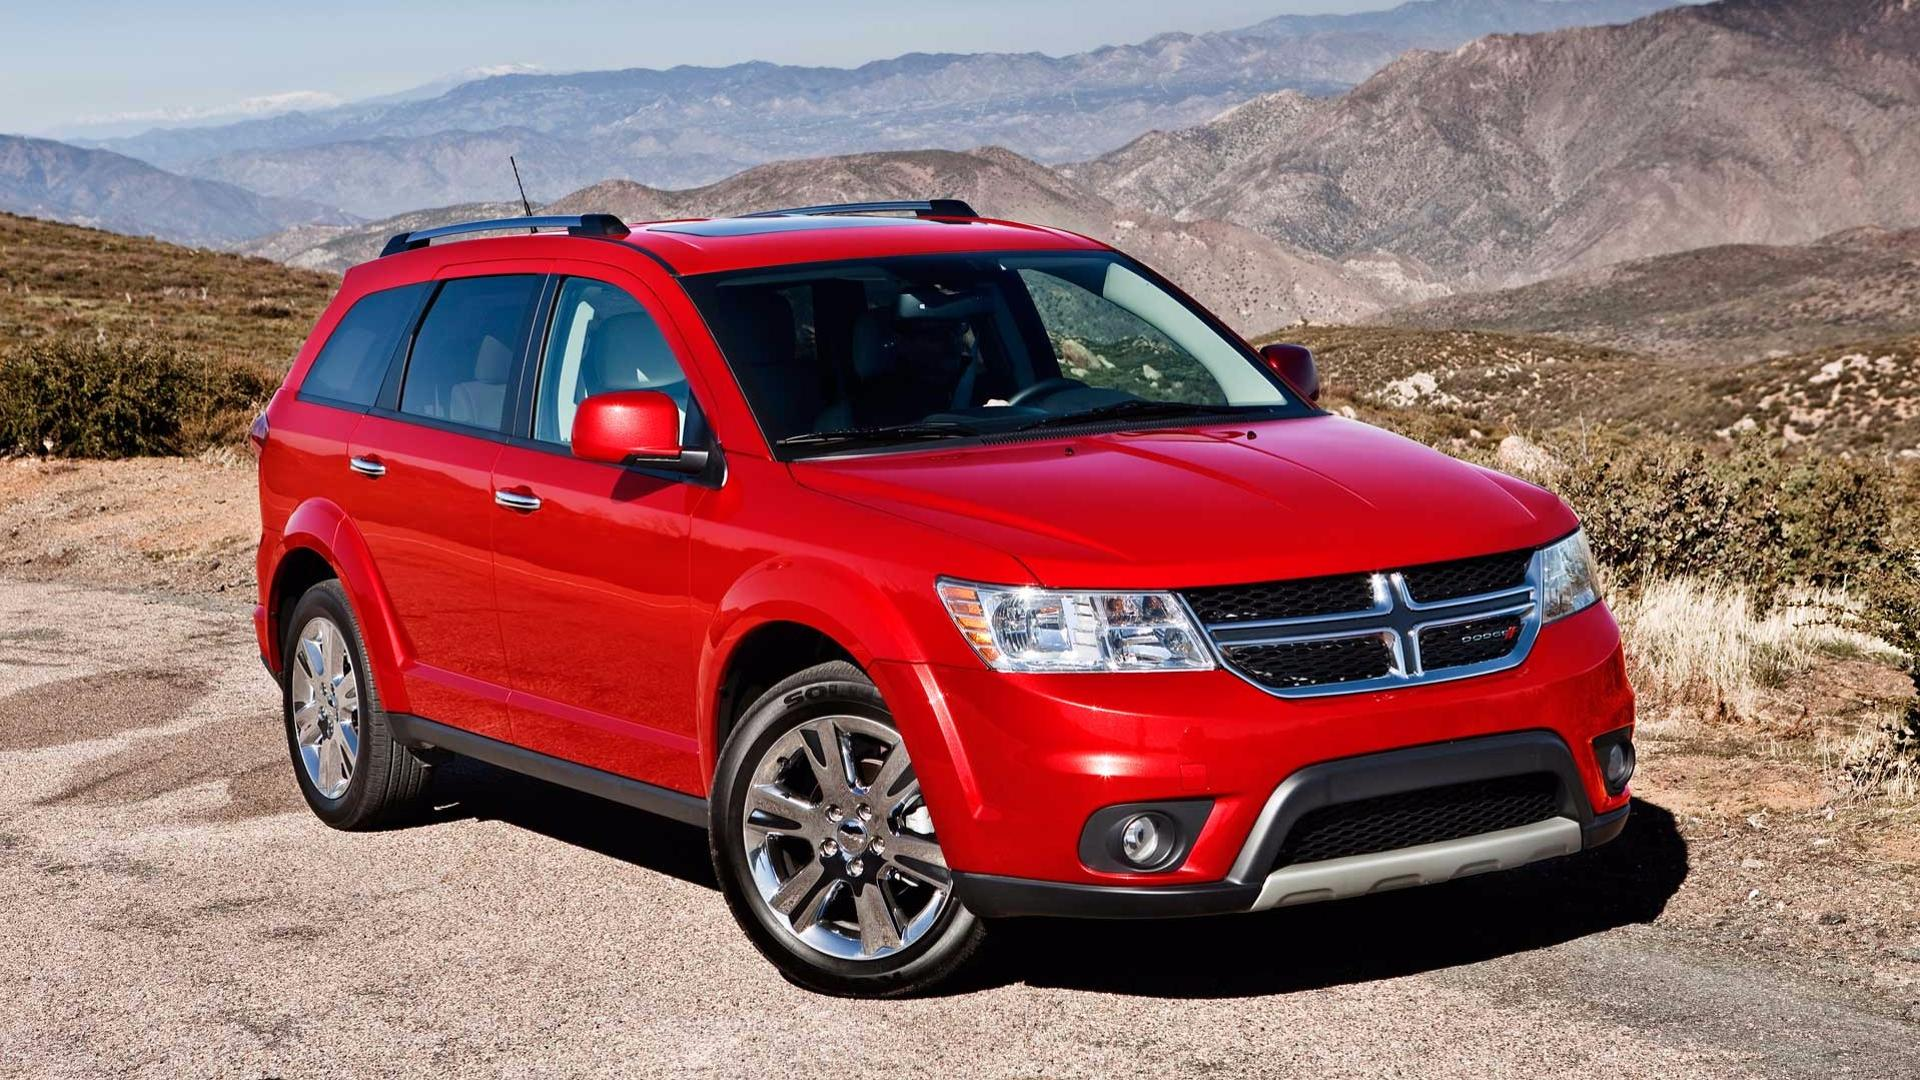 2015 Dodge Journey Airbag Wiring Diagram Just Another Fca Recalls 363k Crossovers For Issues Rh Motor1 Com Rear A C Compressor